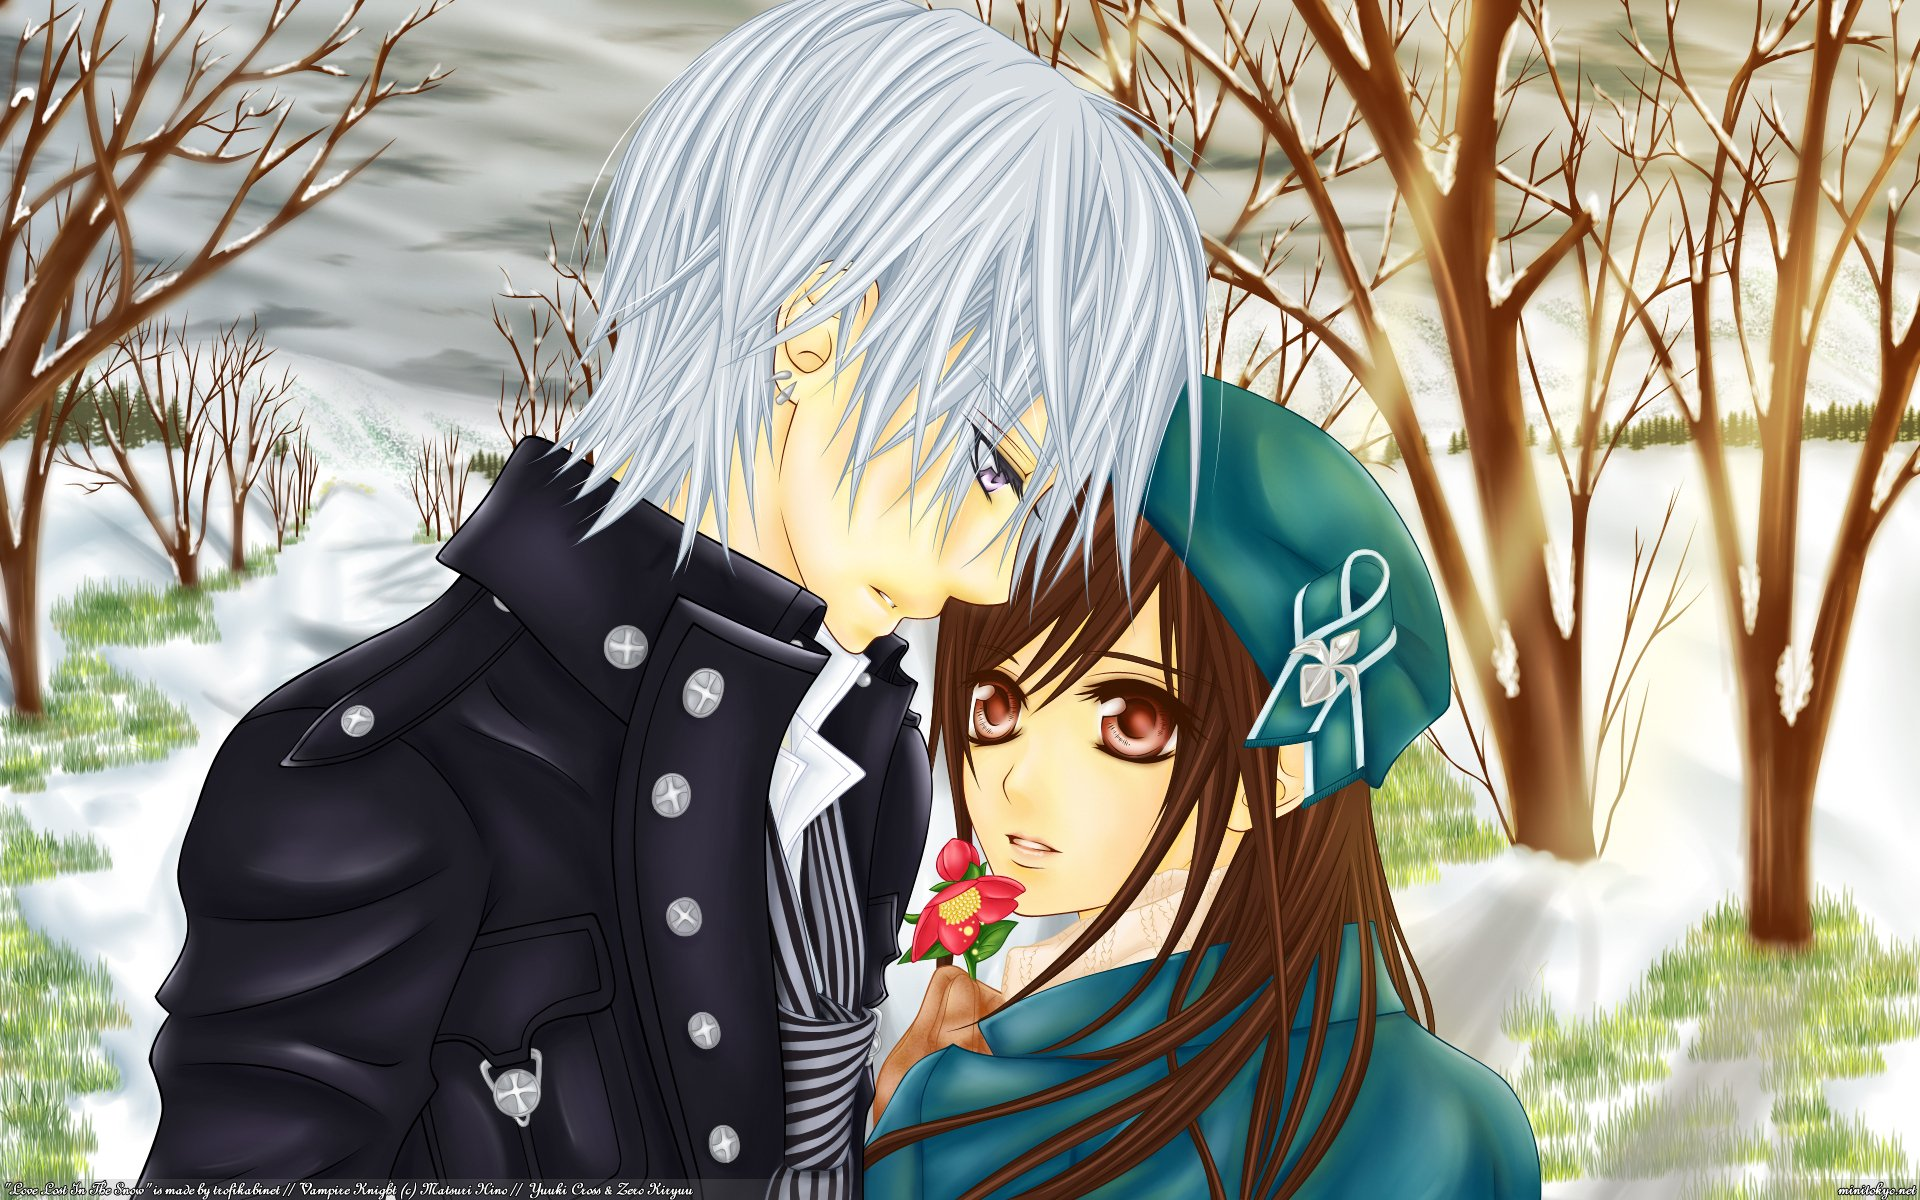 Anime Love images vk love HD wallpaper and background 1920x1200